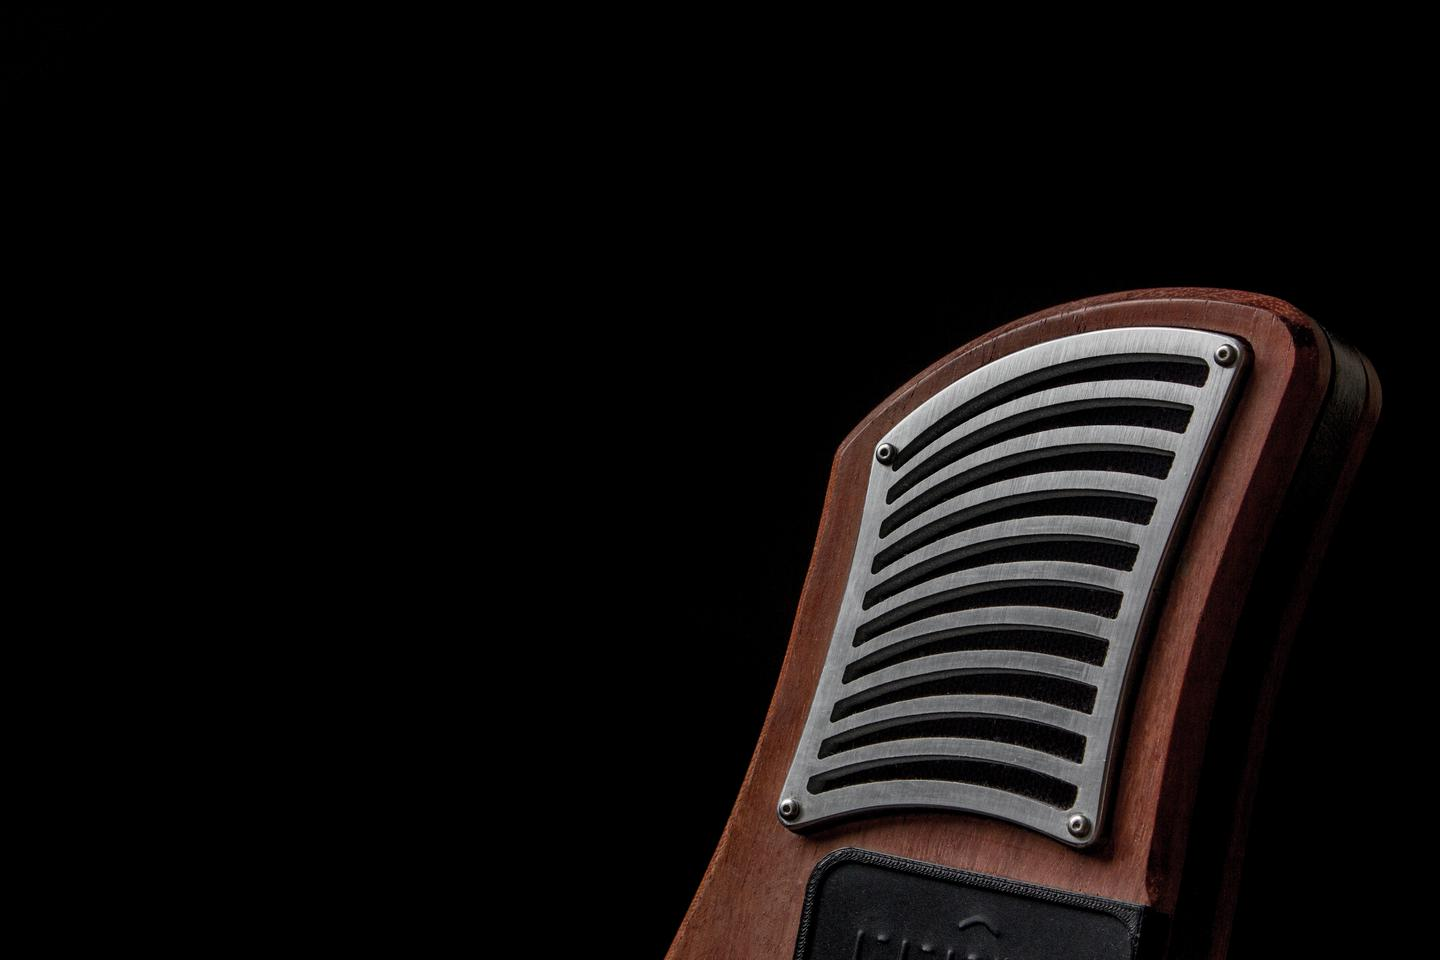 At either end of the ergonomic body fashioned from sustainably-harvested hardwoods and bamboo are BMR speakers